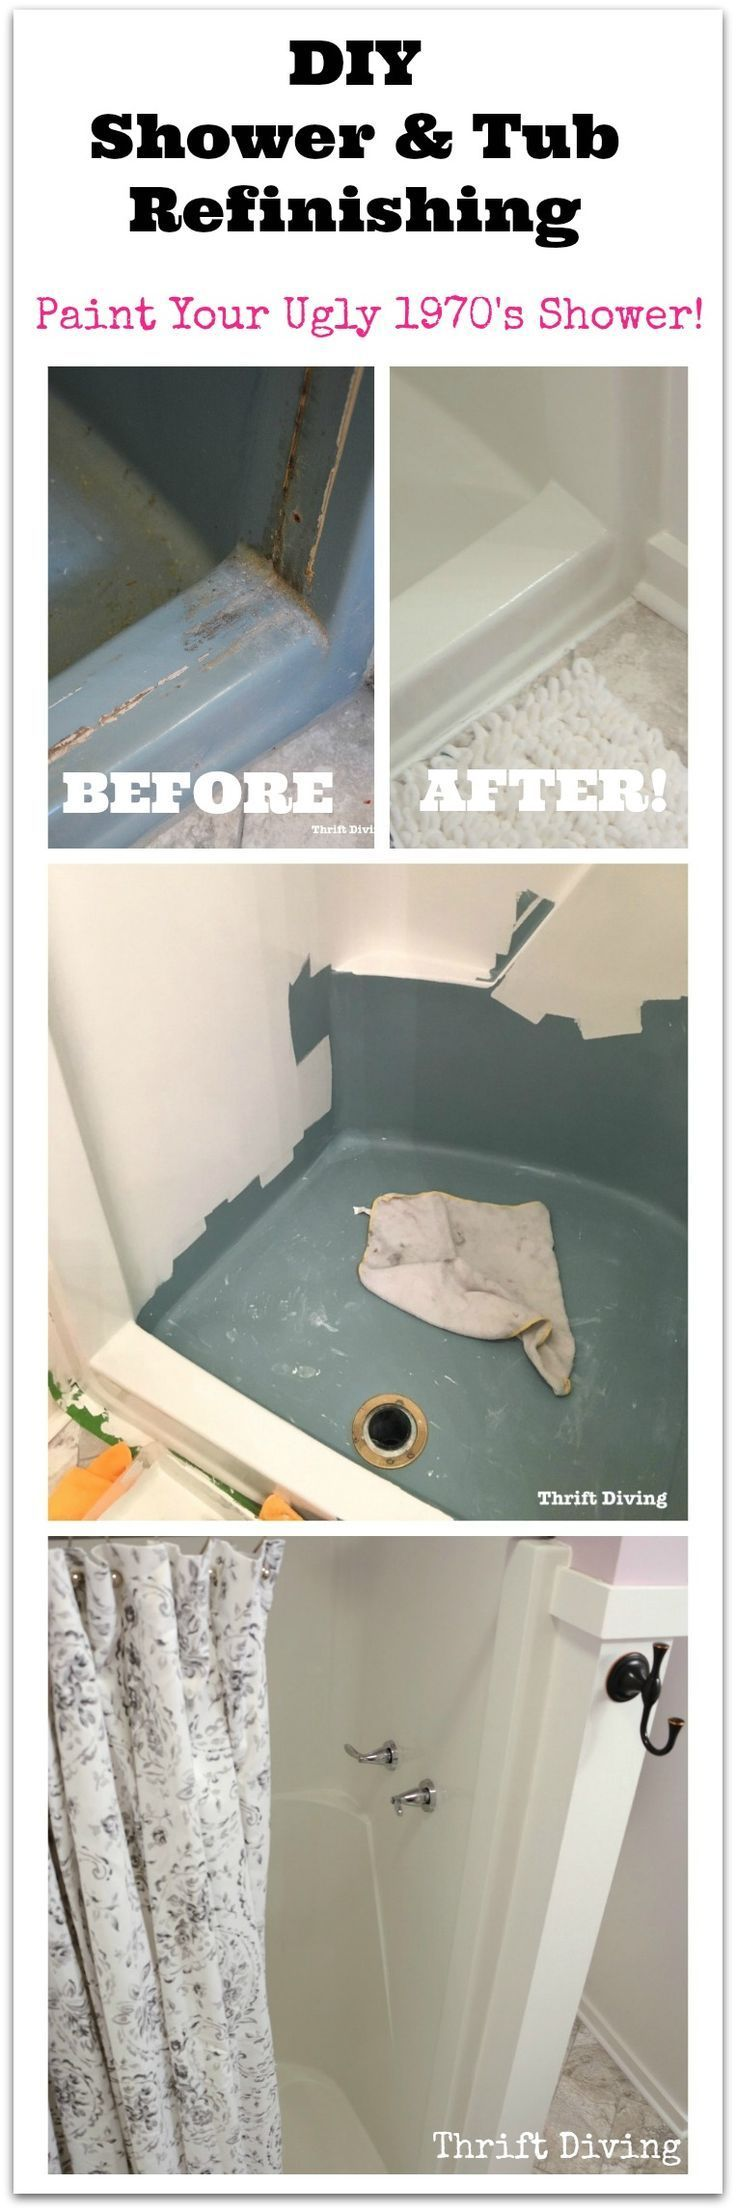 Diy shower and tub refinishing isnt as scary as you may